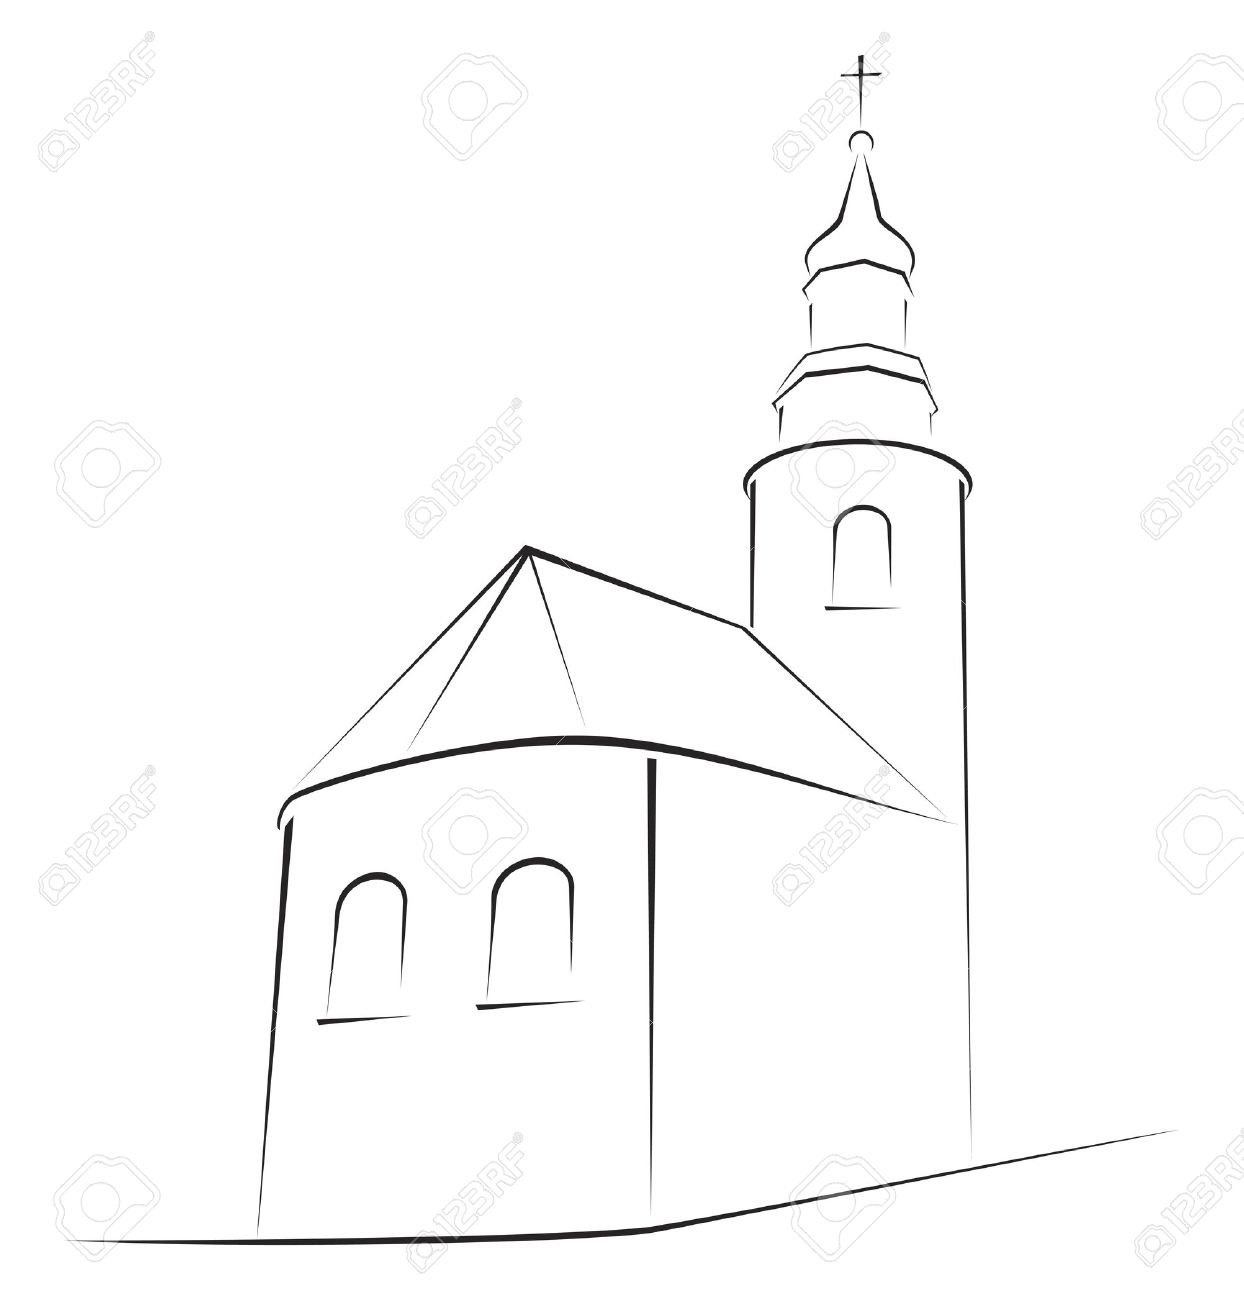 structure of church on simple sketch royalty free cliparts